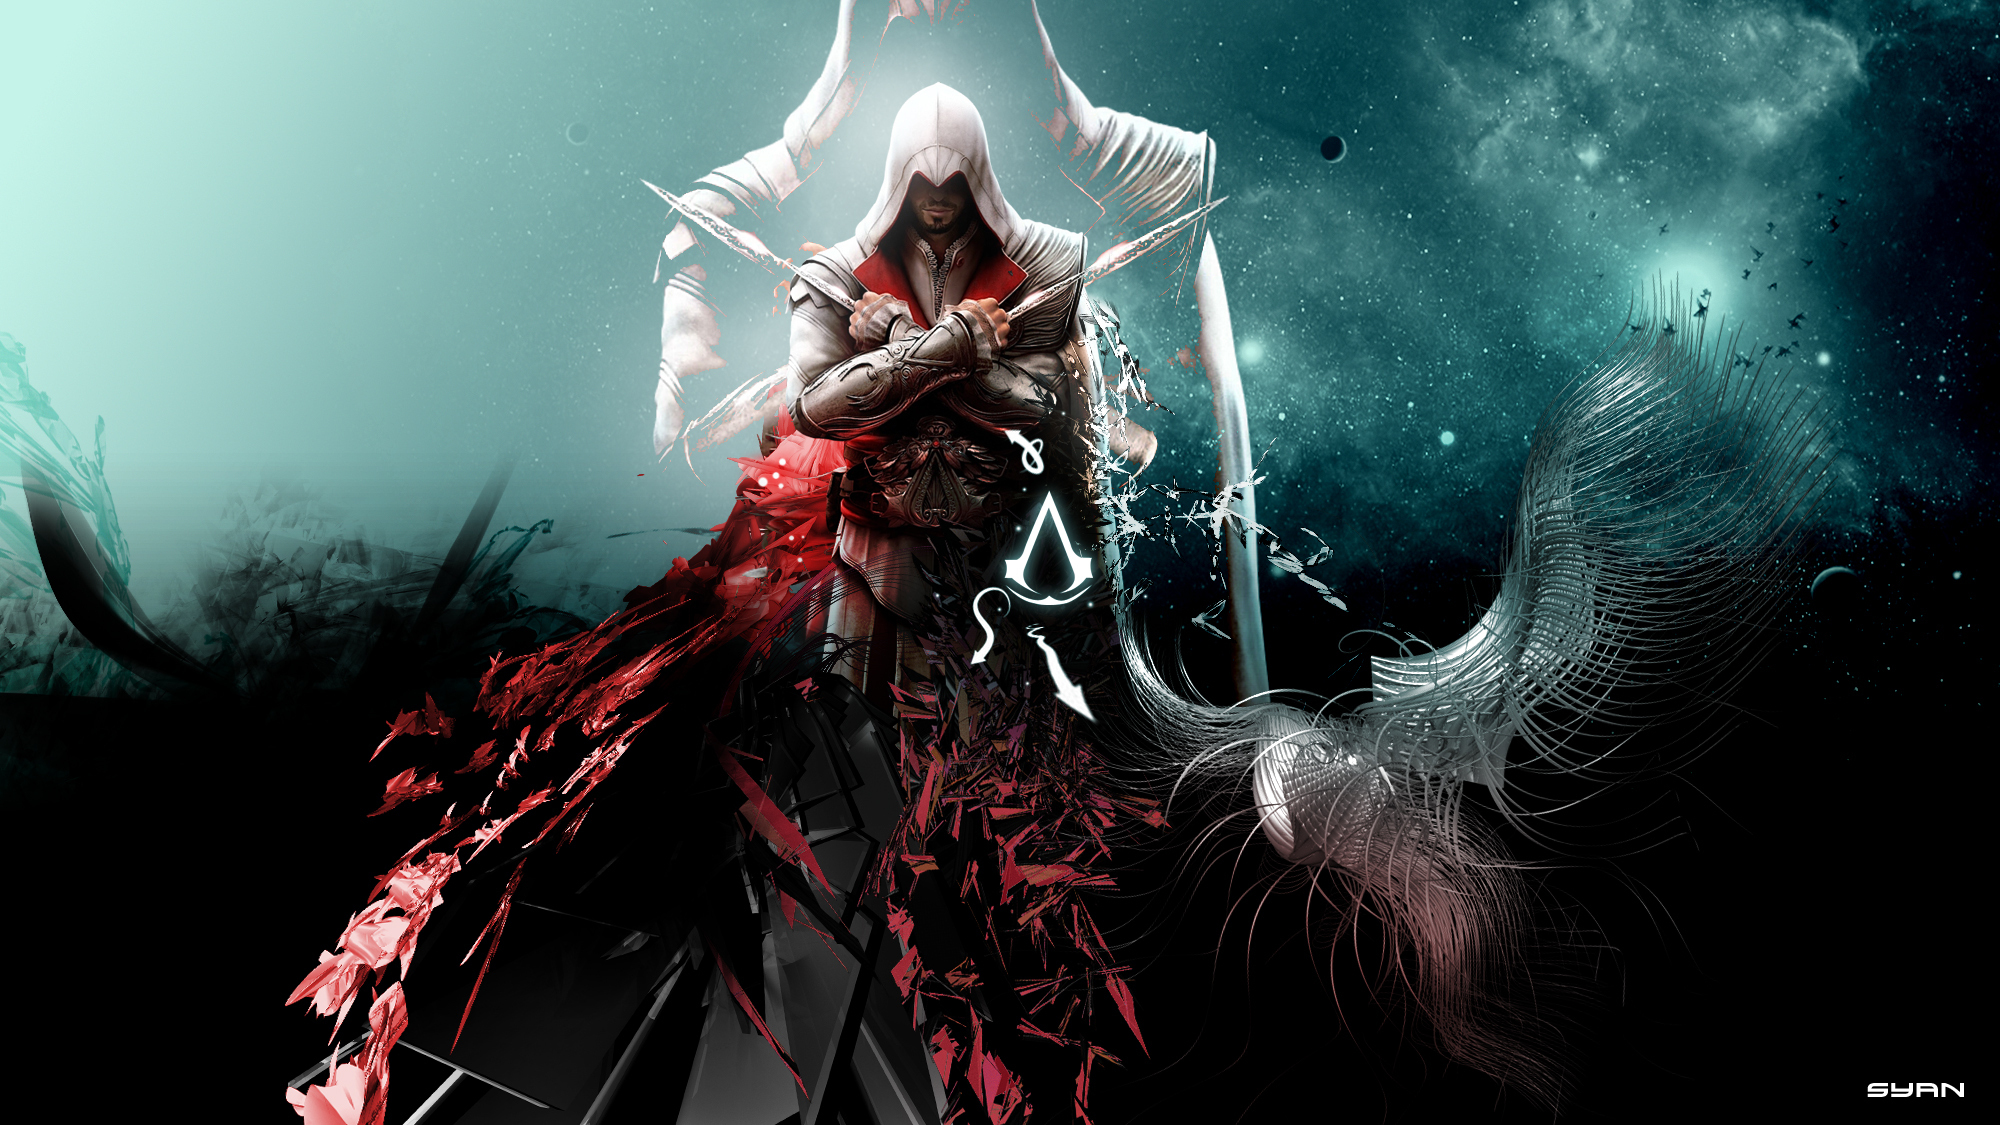 17 Assassin's Creed HD Wallpapers | Backgrounds - Wallpaper Abyss